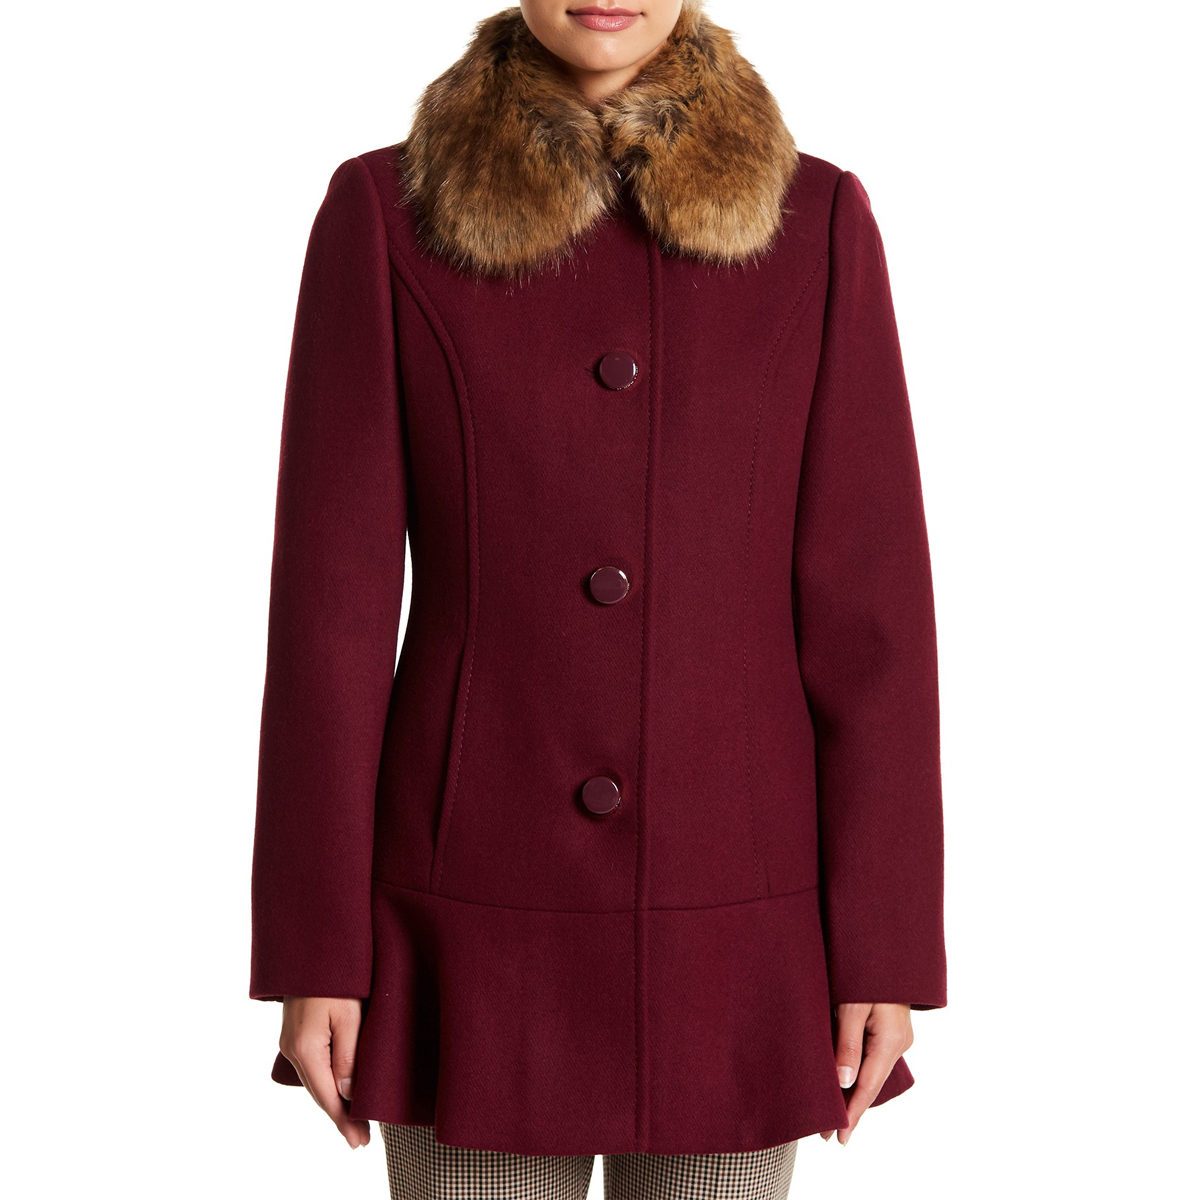 Kate Spade New York Faux Fur Collar Wool Blend Flounce Coat